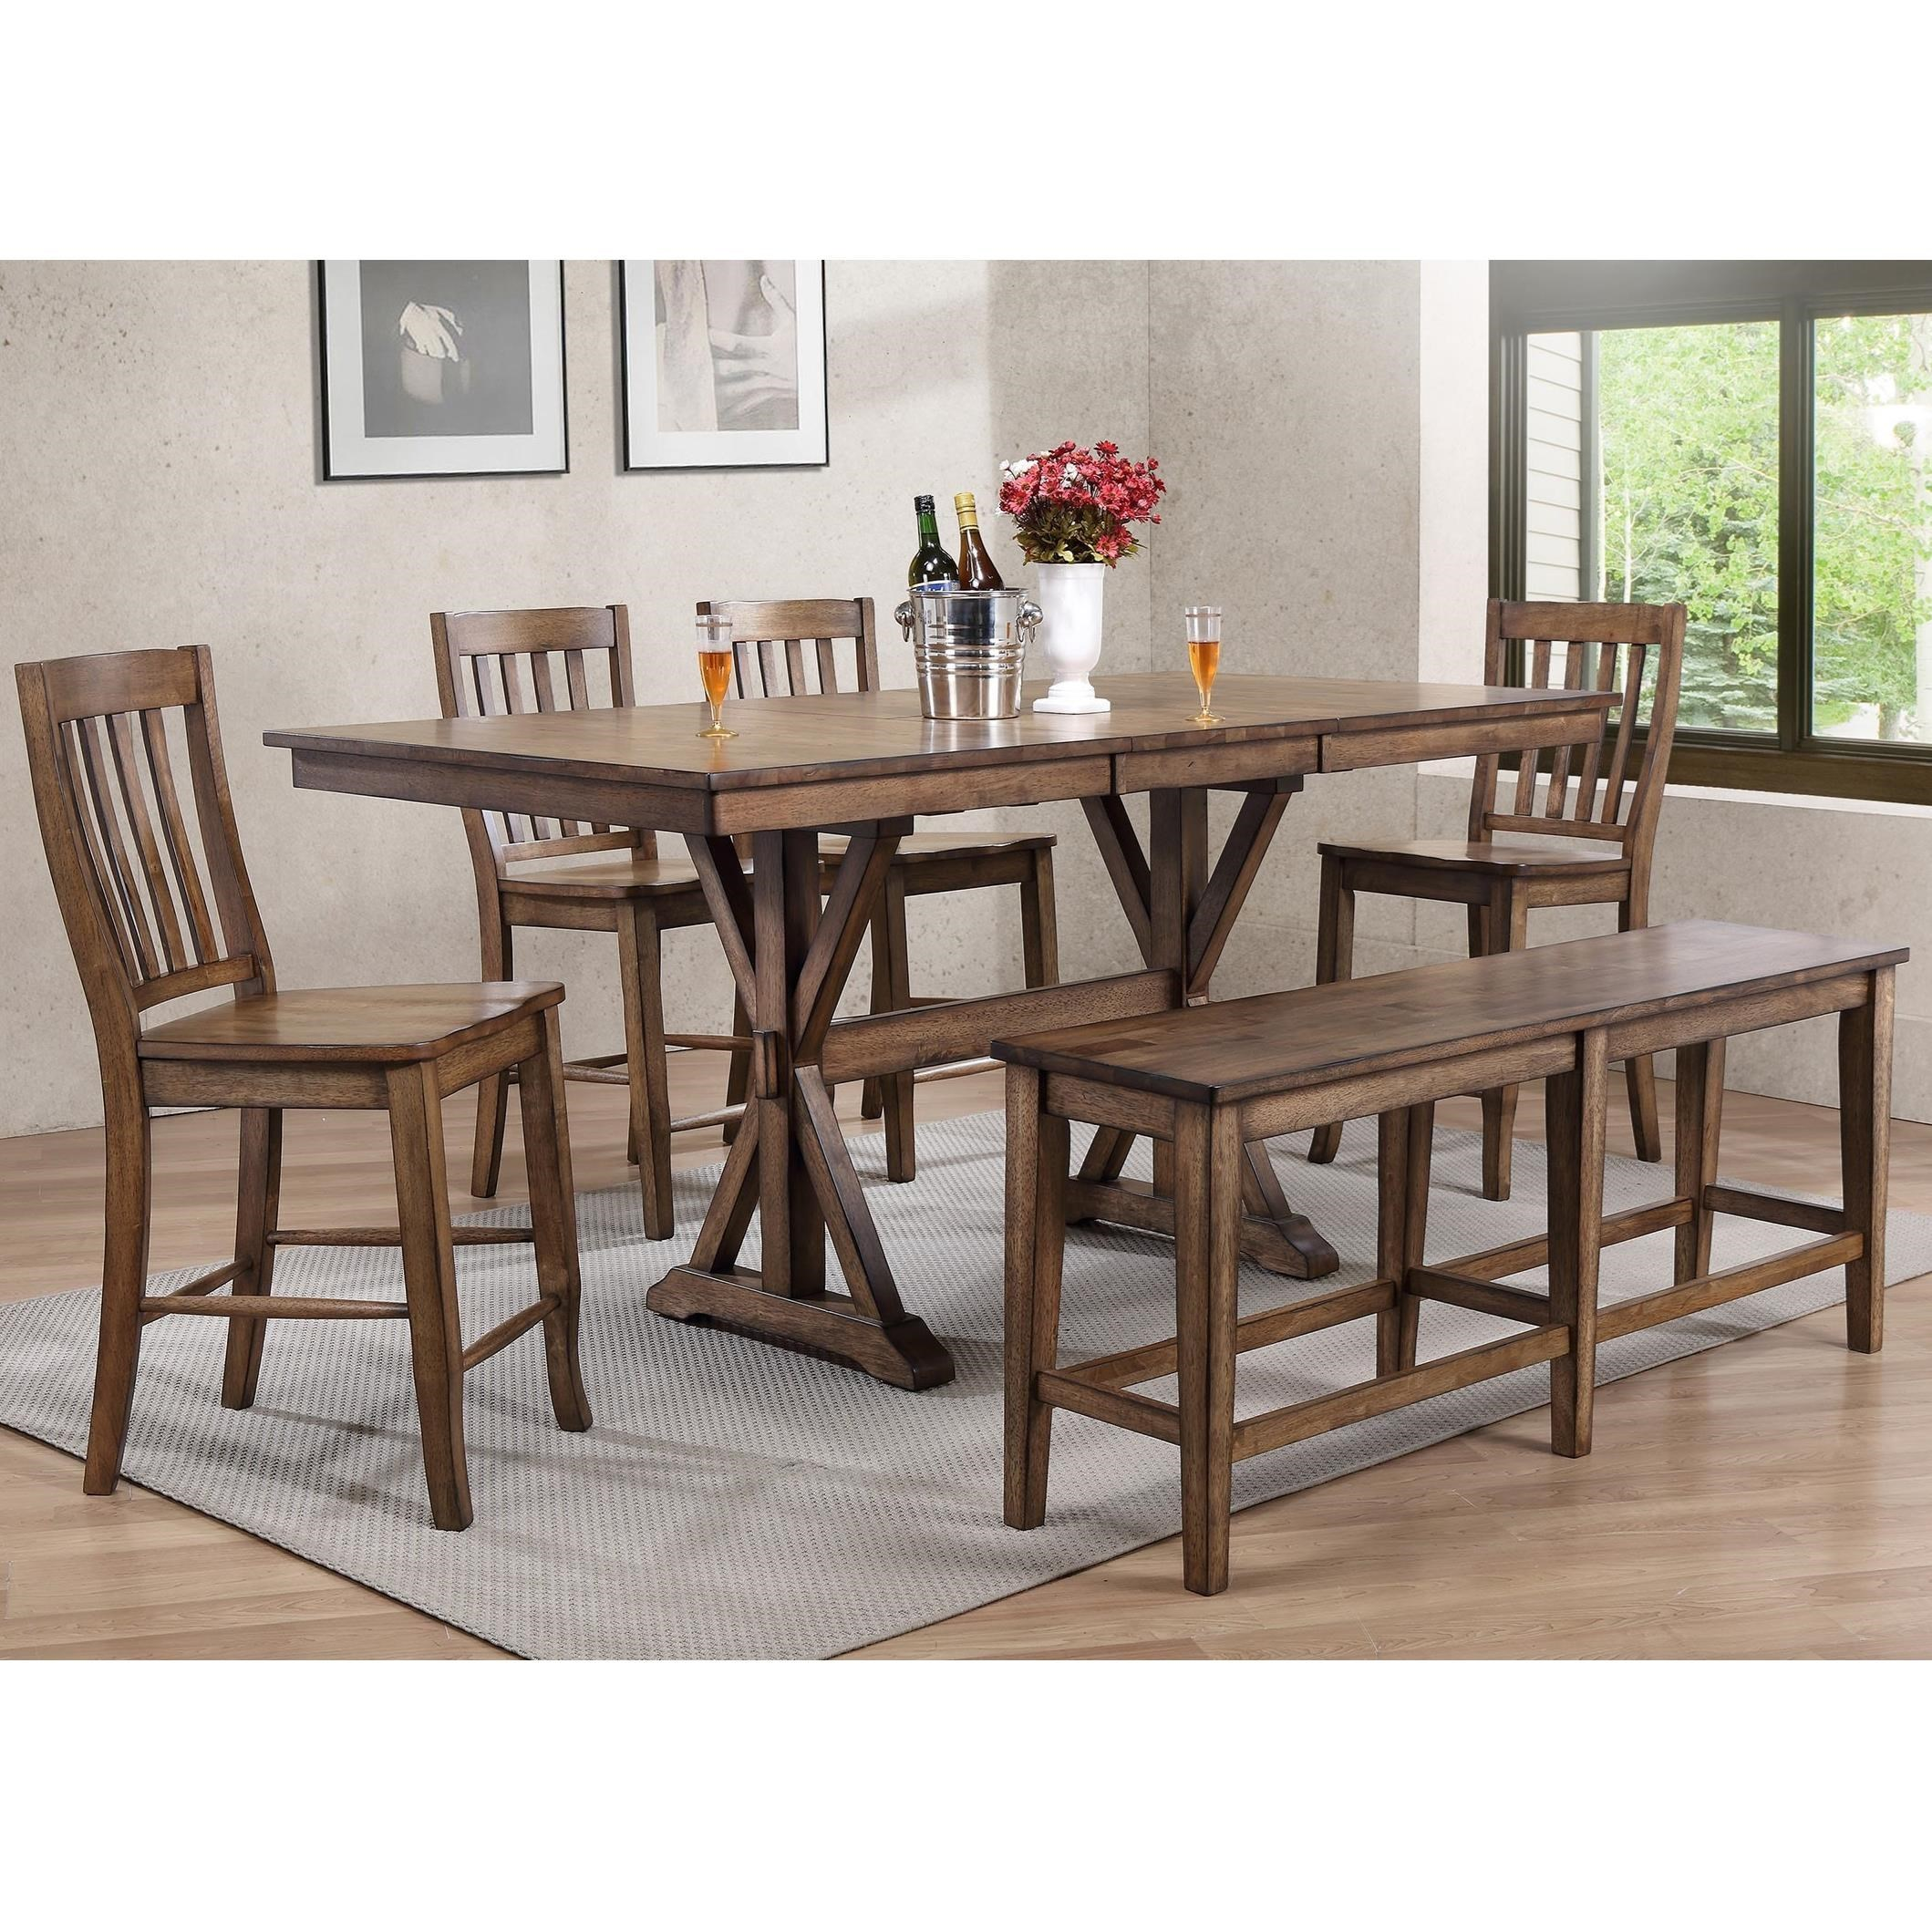 Carmel 6 Piece Dining Set With Bench By Winners Only